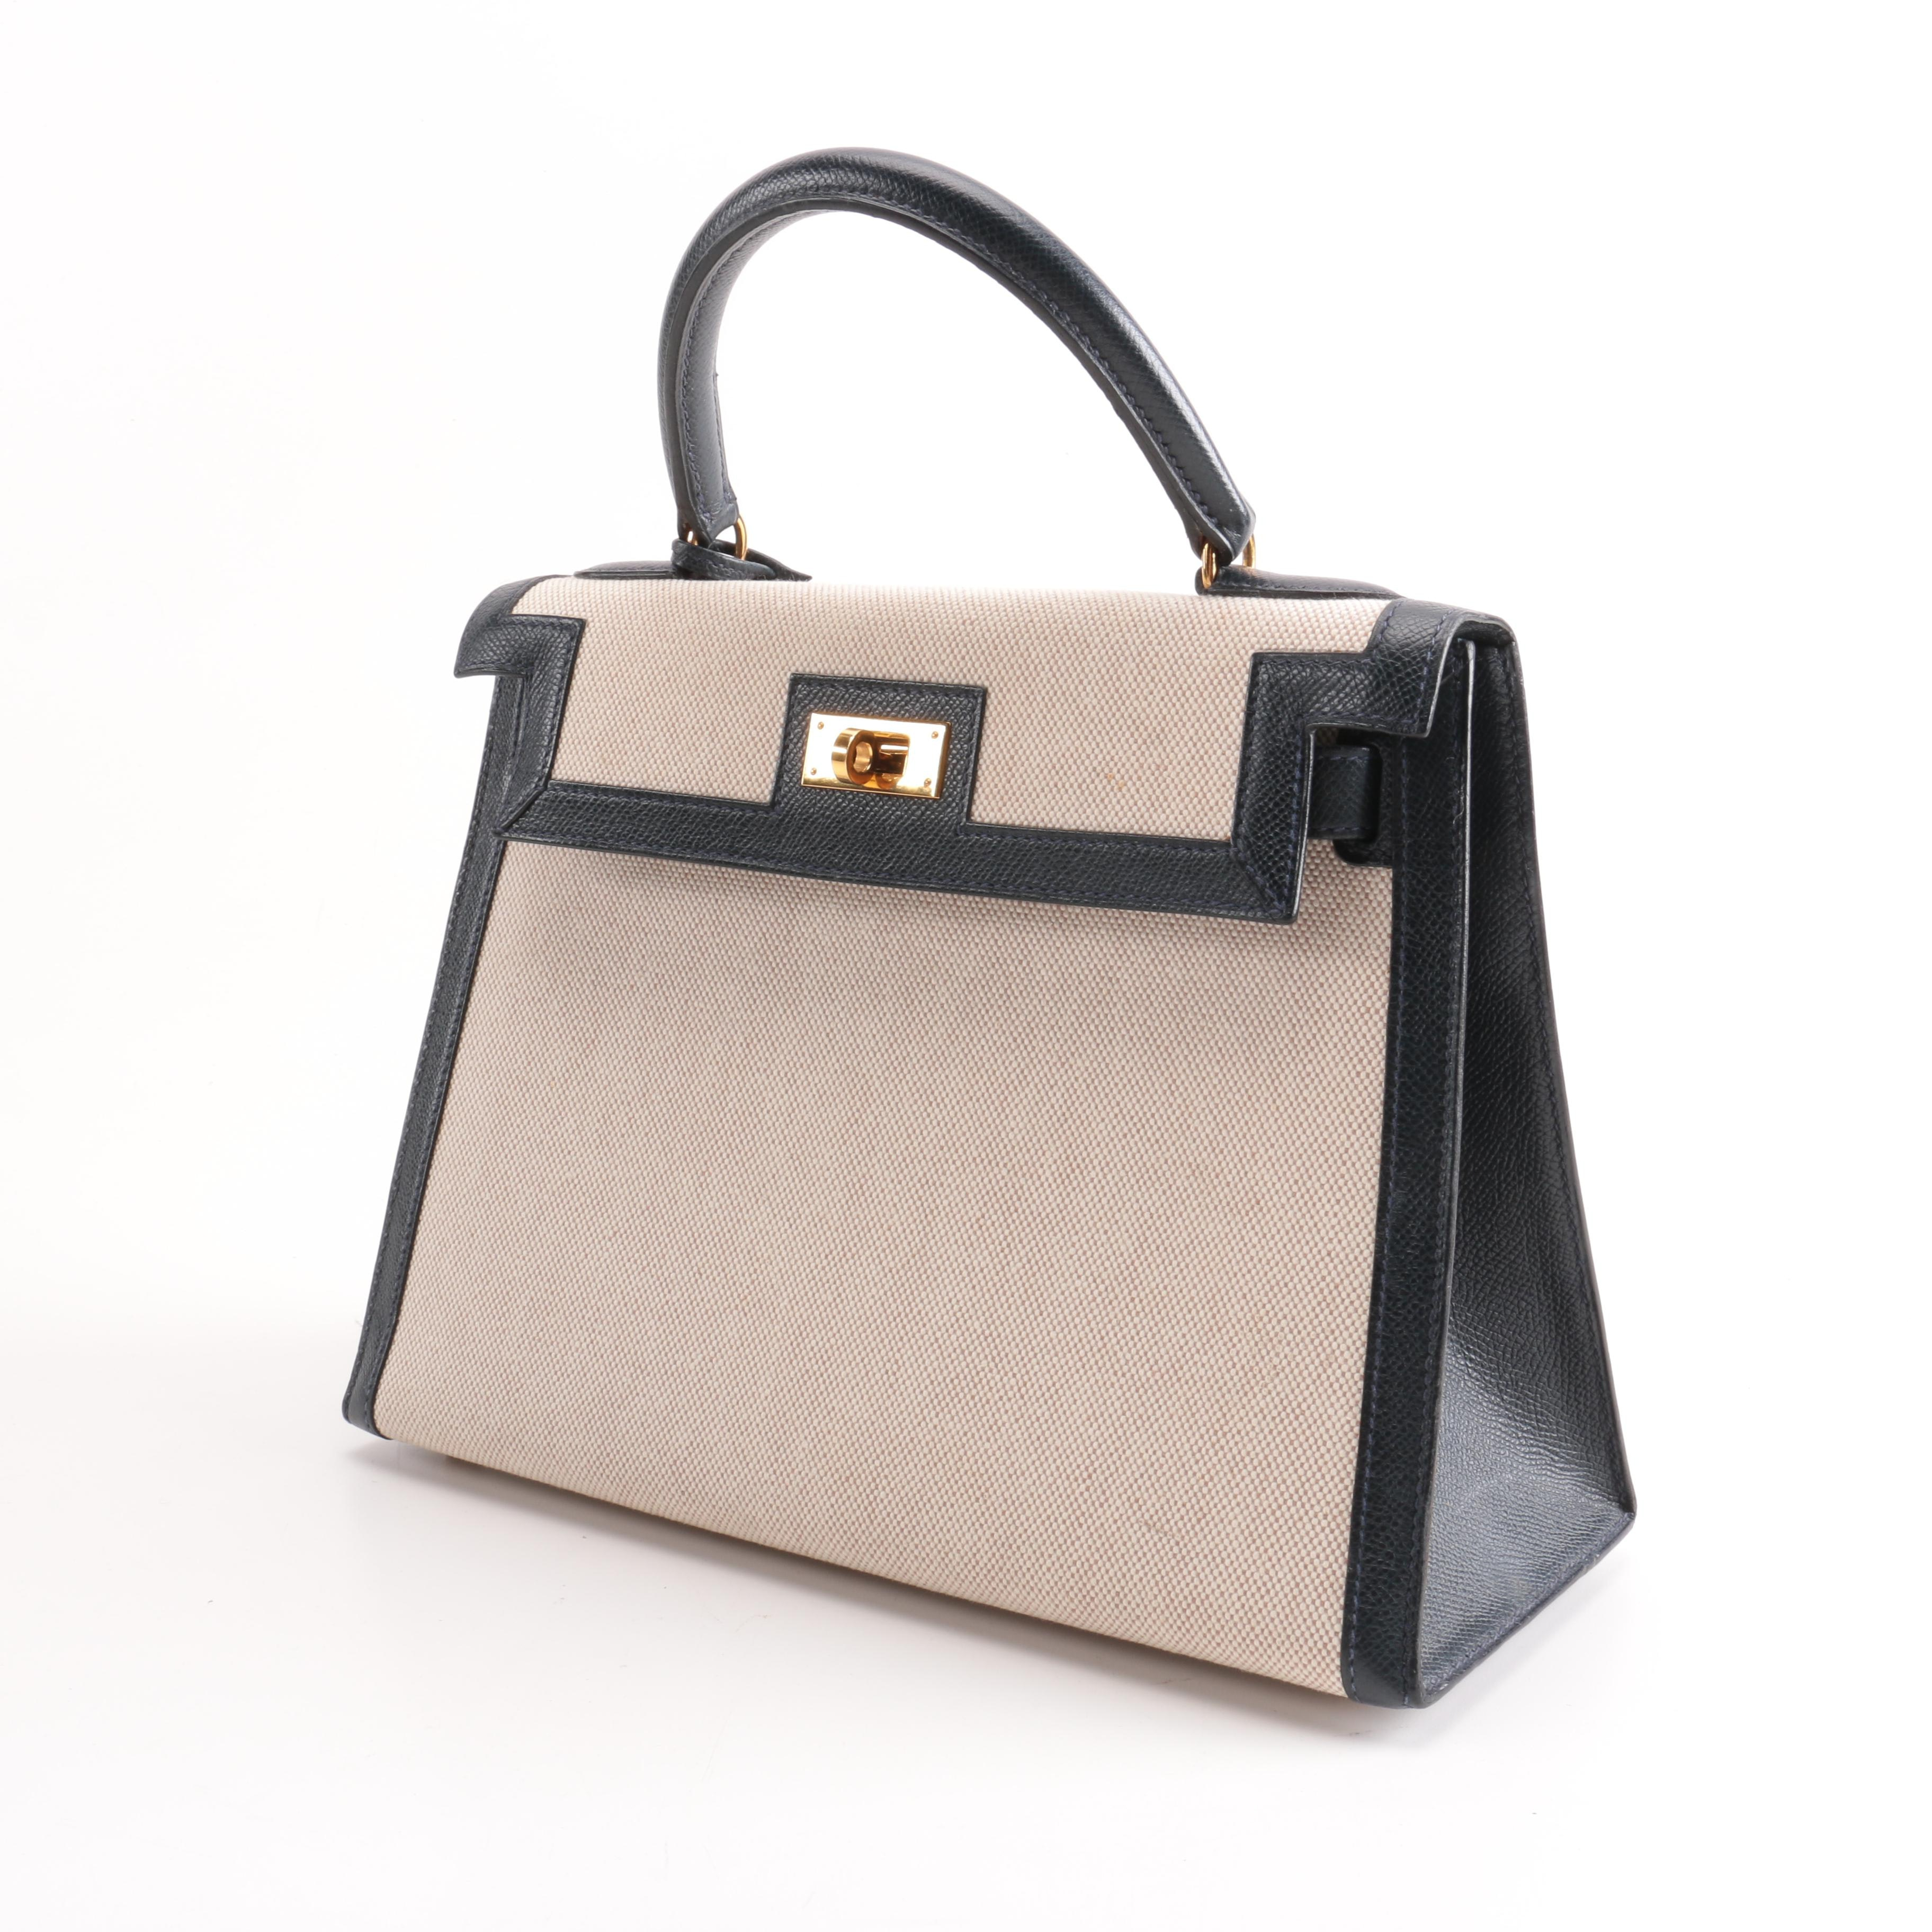 Hermès Canvas and Leather Kelly Handbag